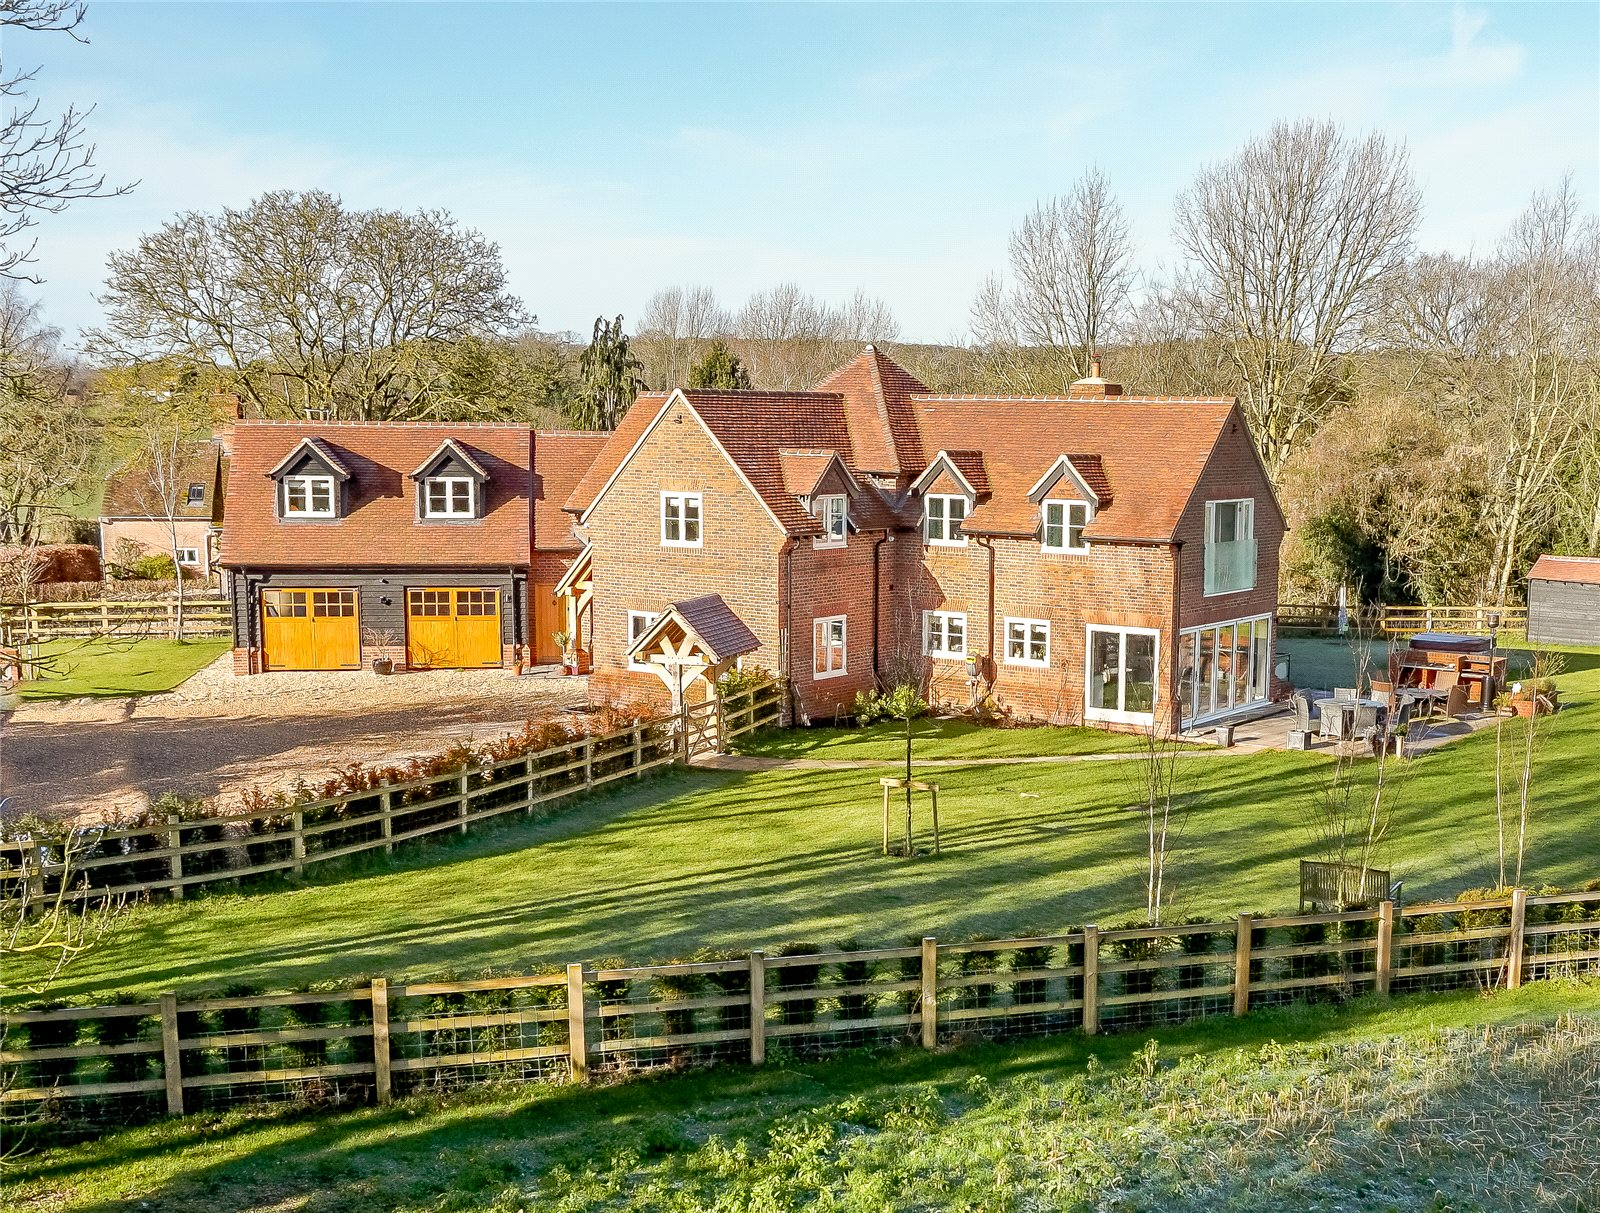 Villa per Vendita alle ore Back Lane, Stanford Dingley, Reading, RG7 Reading, Inghilterra